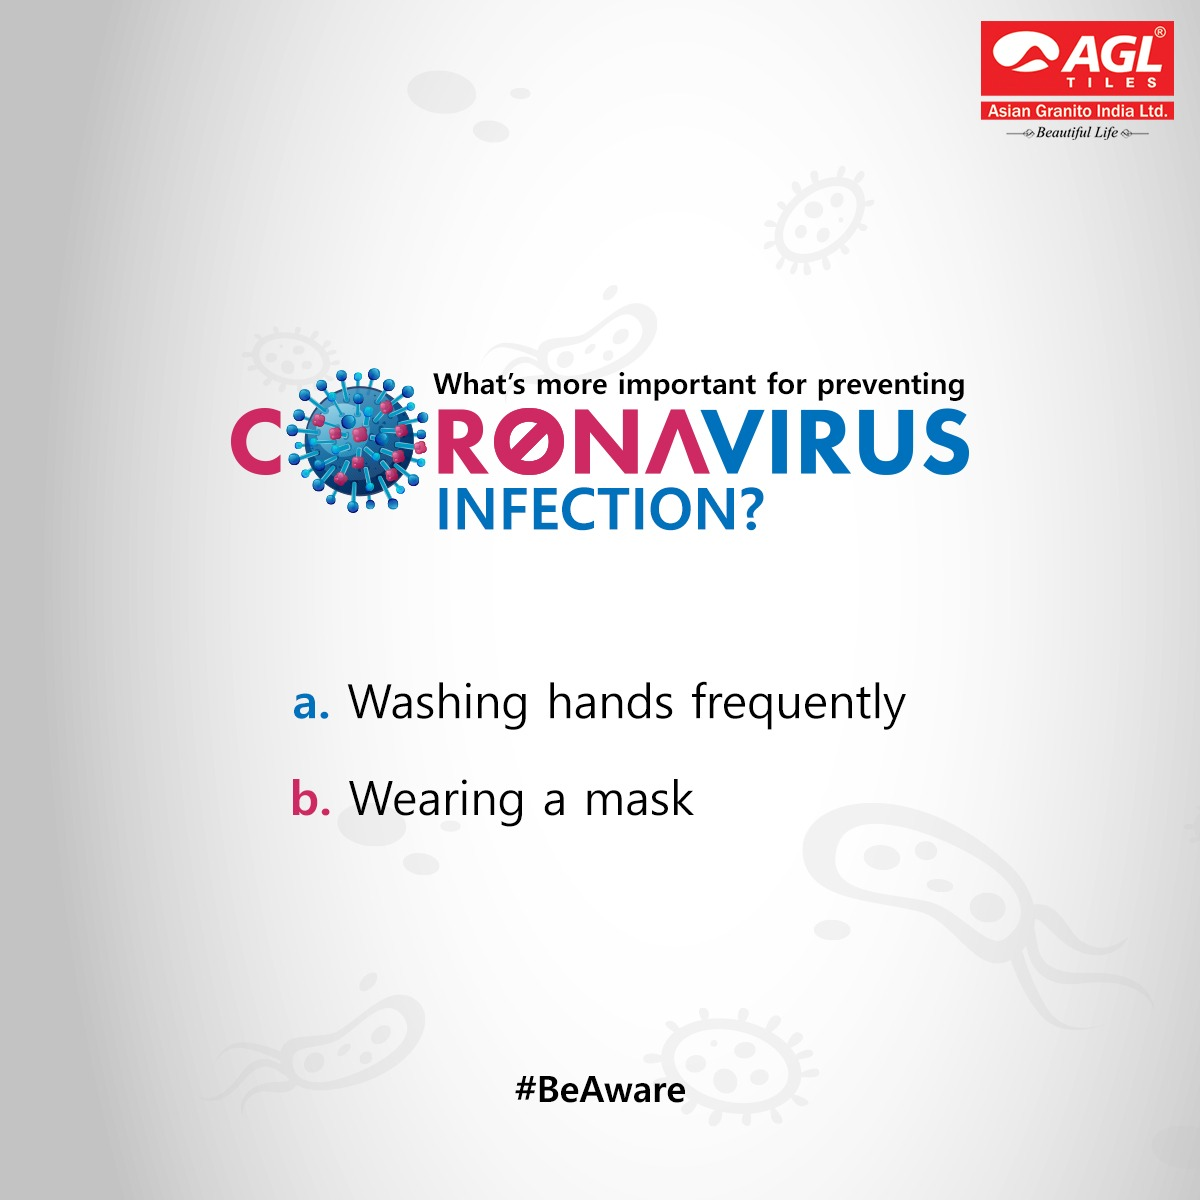 Follow the page and photo, Comment the correct answer, Tag 3 or more friends and stand a chance to win!  #BeAware #Quiz #Contest #CoronaVirus #AGLTiles #ig #instagood pic.twitter.com/ZRgeZgbP4d  by Asian Granito India Ltd